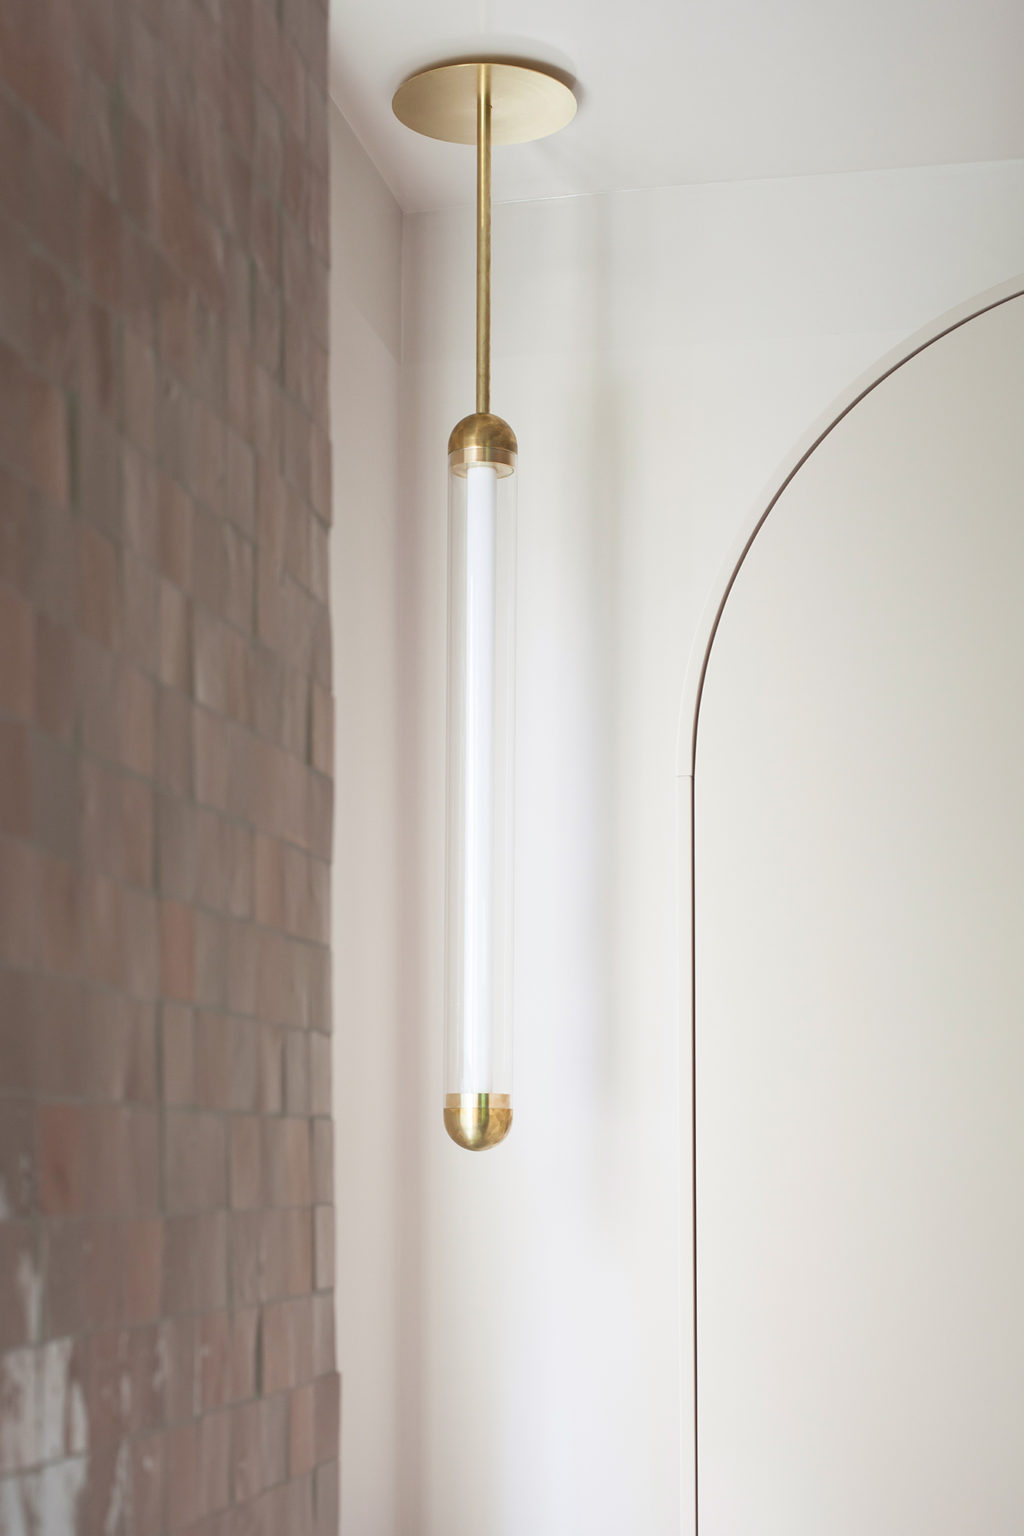 2LG lighting collection for Cameron Design House